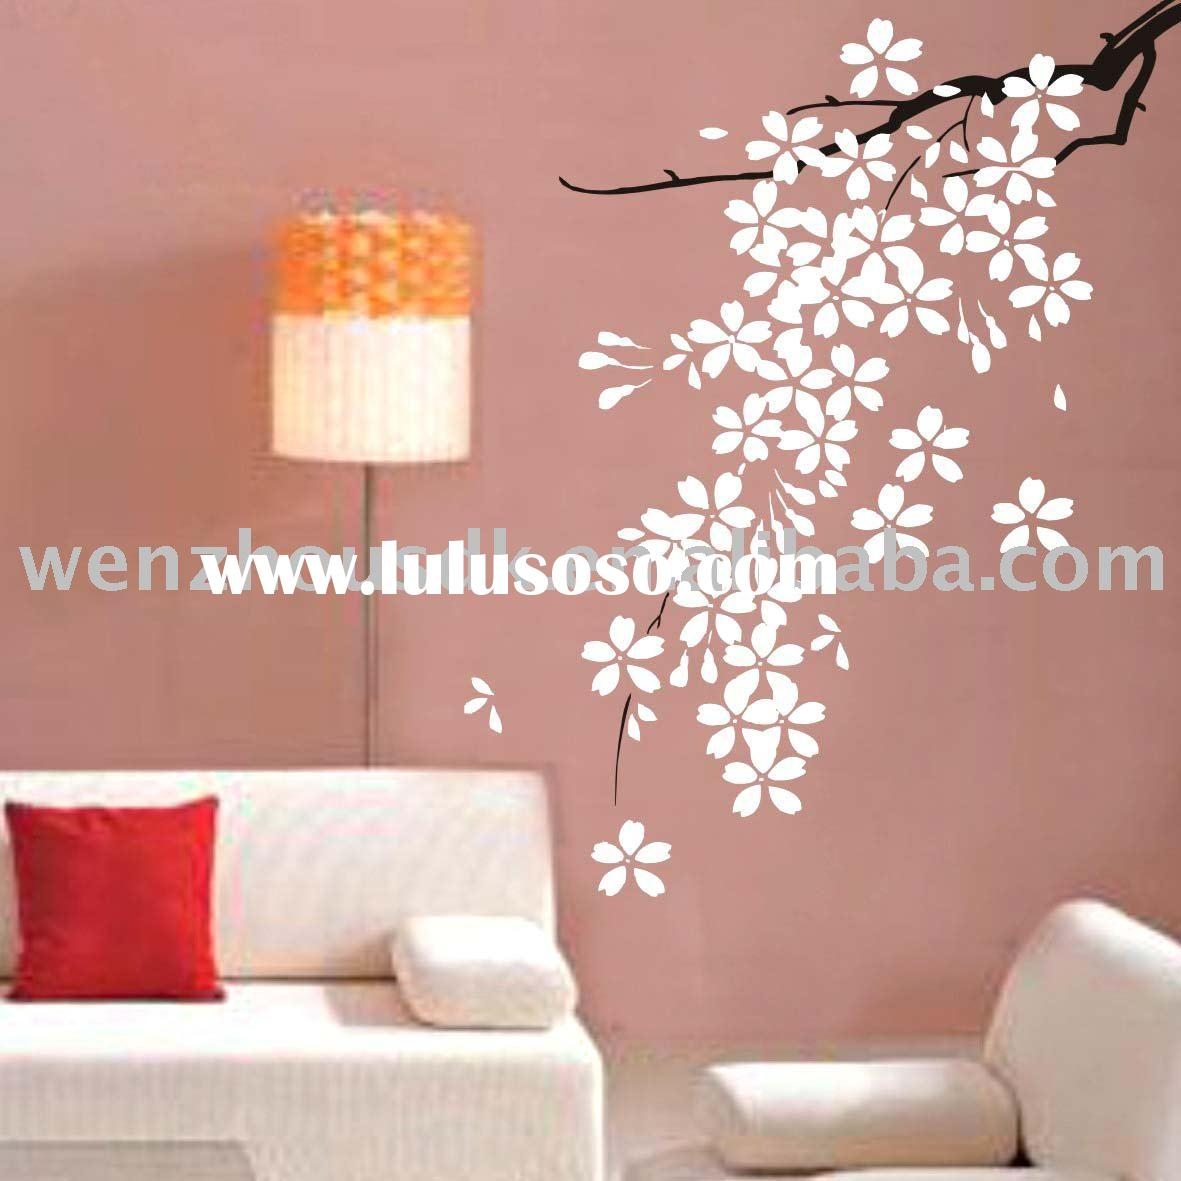 wall sticker decal decorations, wall sticker decal decorations ...